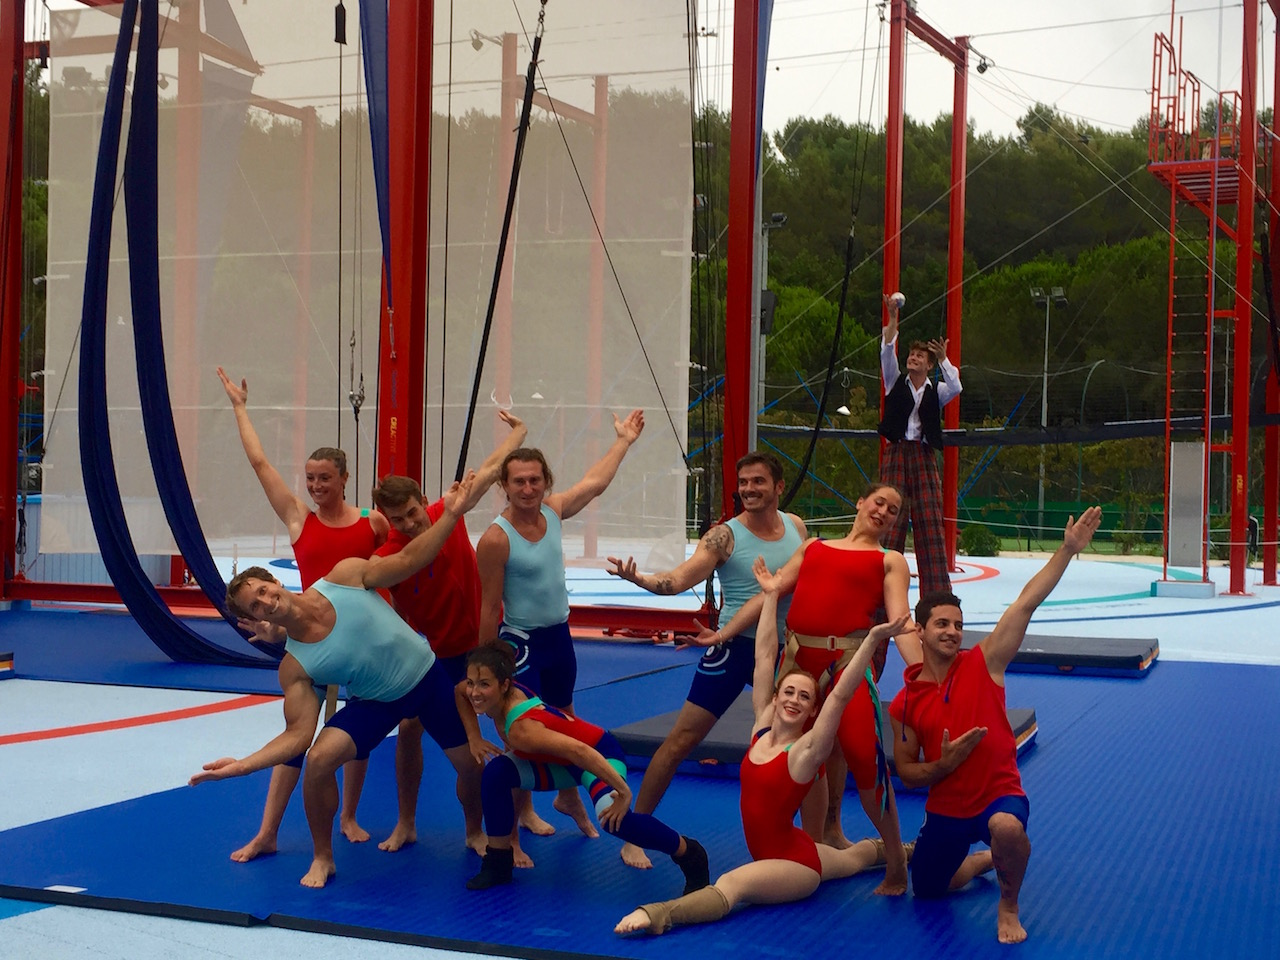 troupe du cirque du soleil